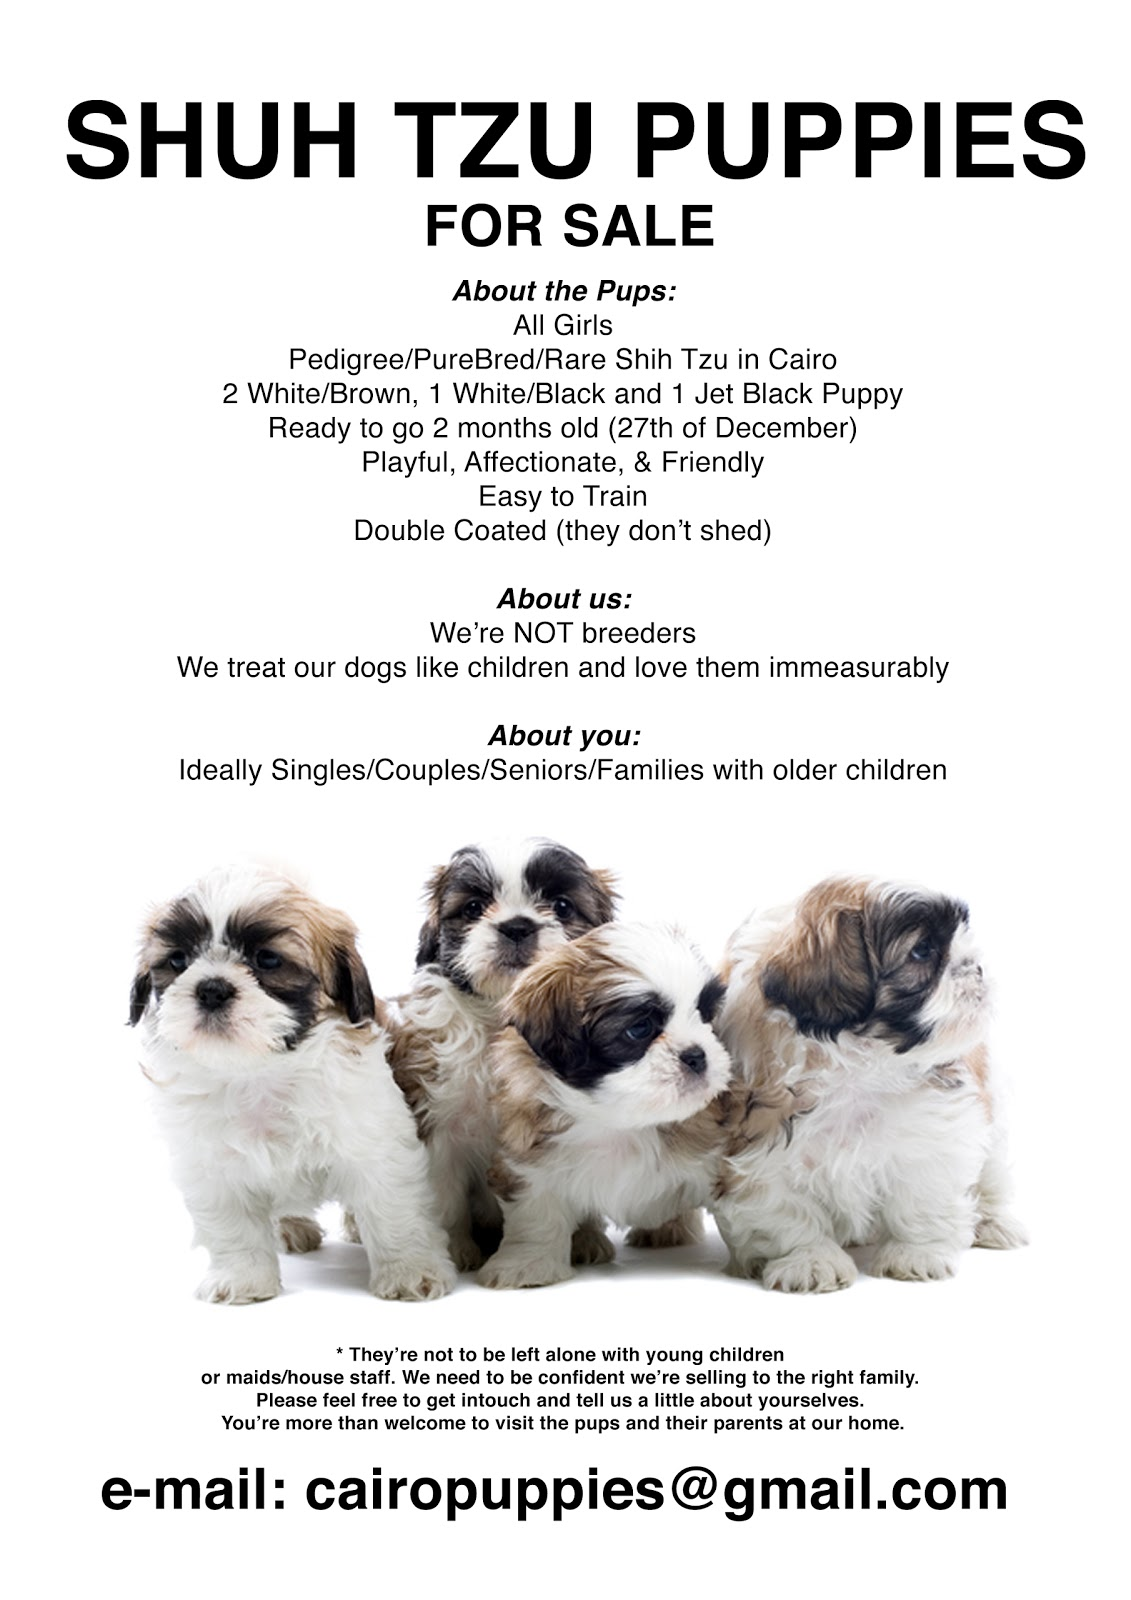 Shih tzu puppies for sale flyer info for Puppy for sale flyer templates